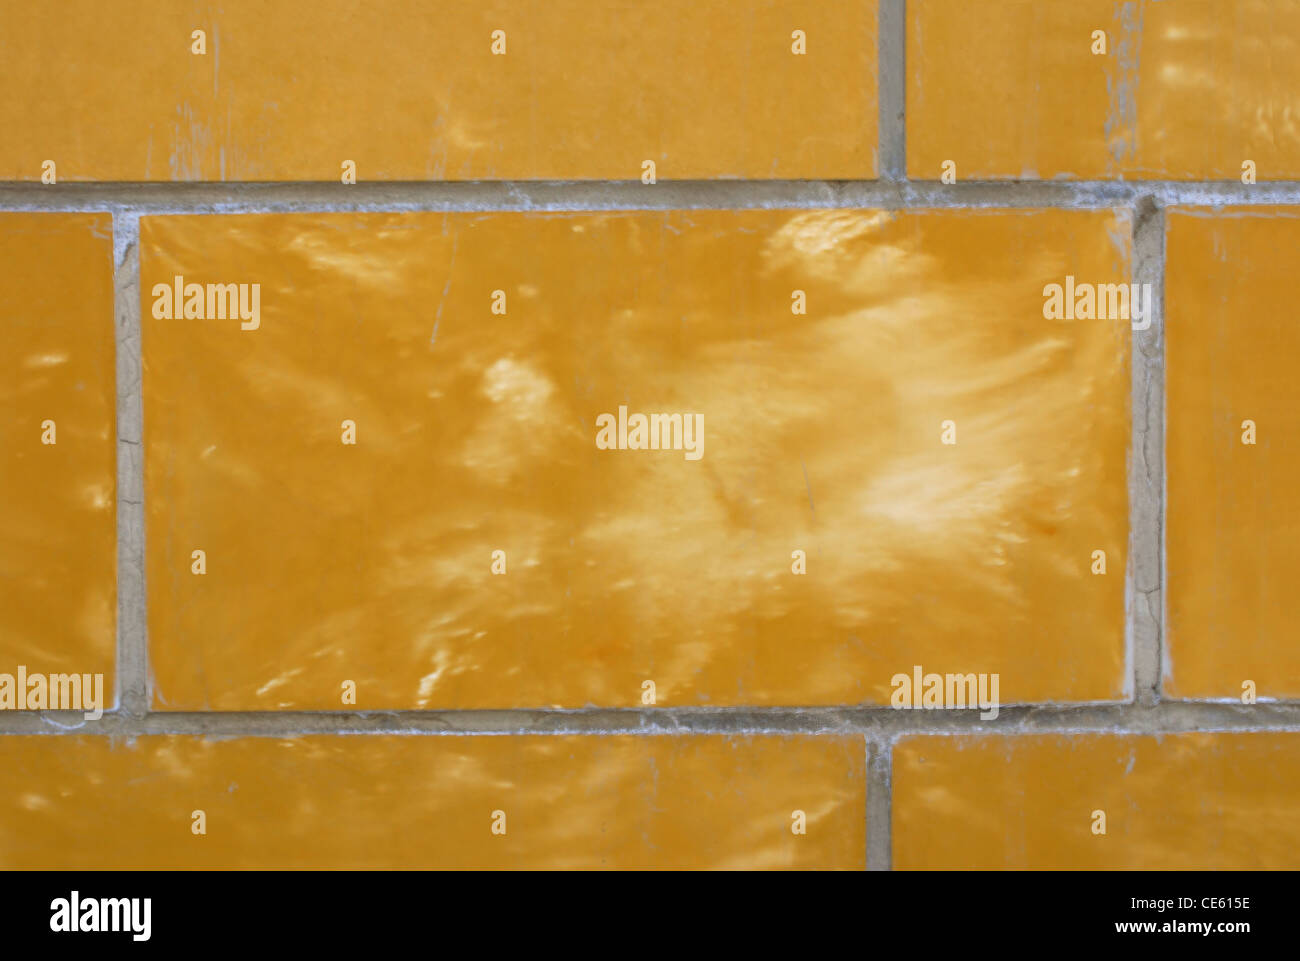 Brick wall. - Stock Image